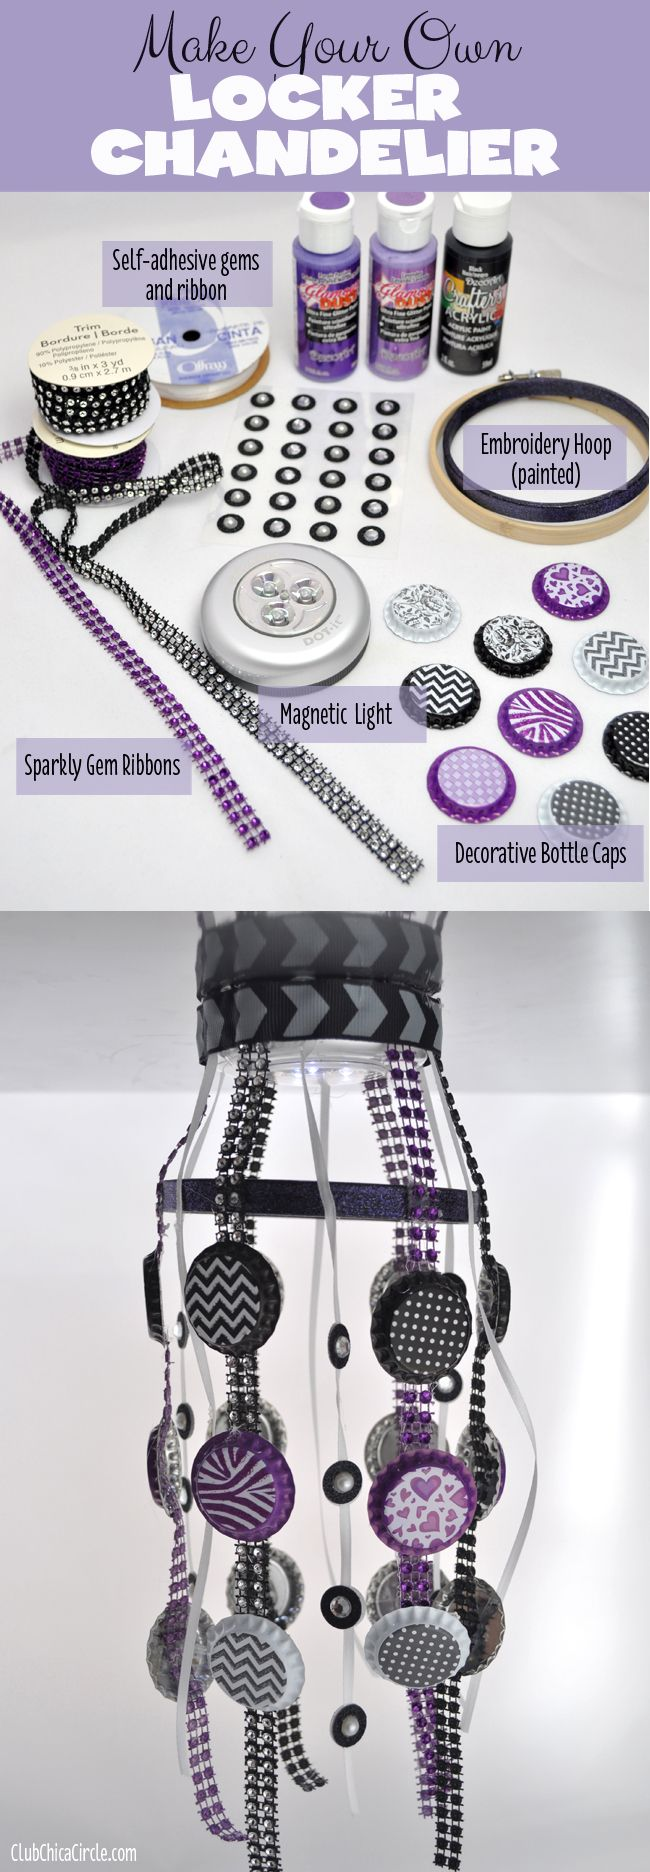 Tween Locker Craft Ideas  - make your own locker chandelier, magnetic bulletin board, and locker rug. So cute!